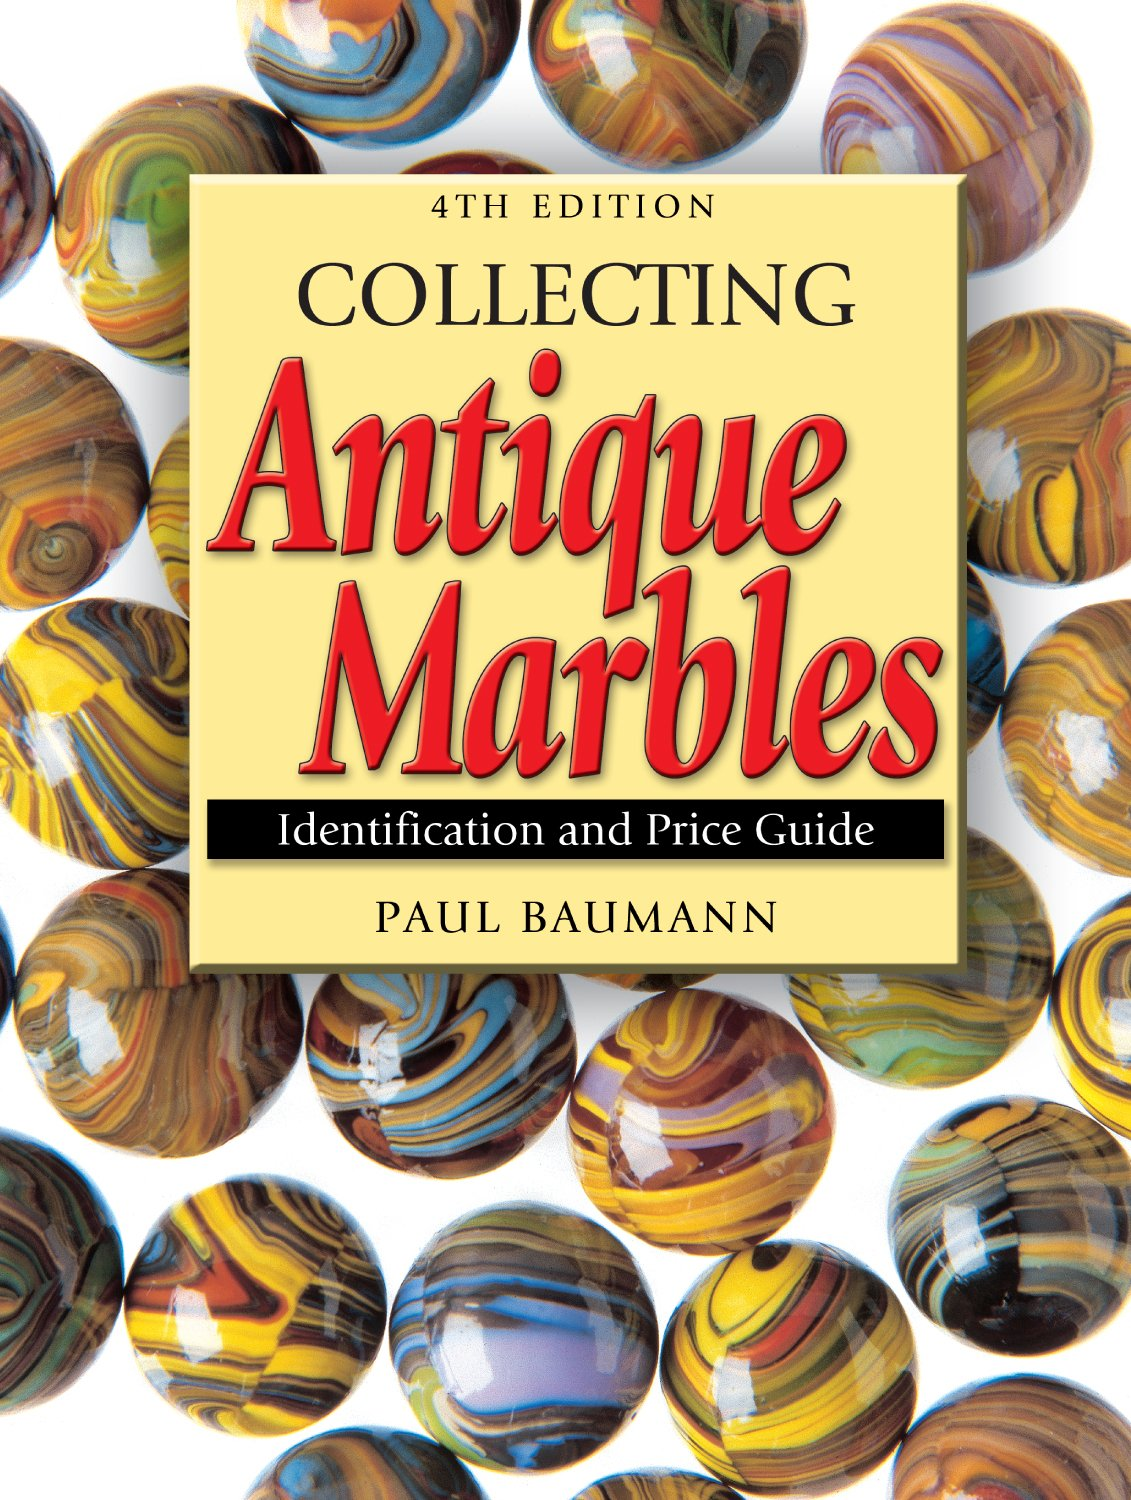 Price guide to collecting antique marbles: p. Baumann.